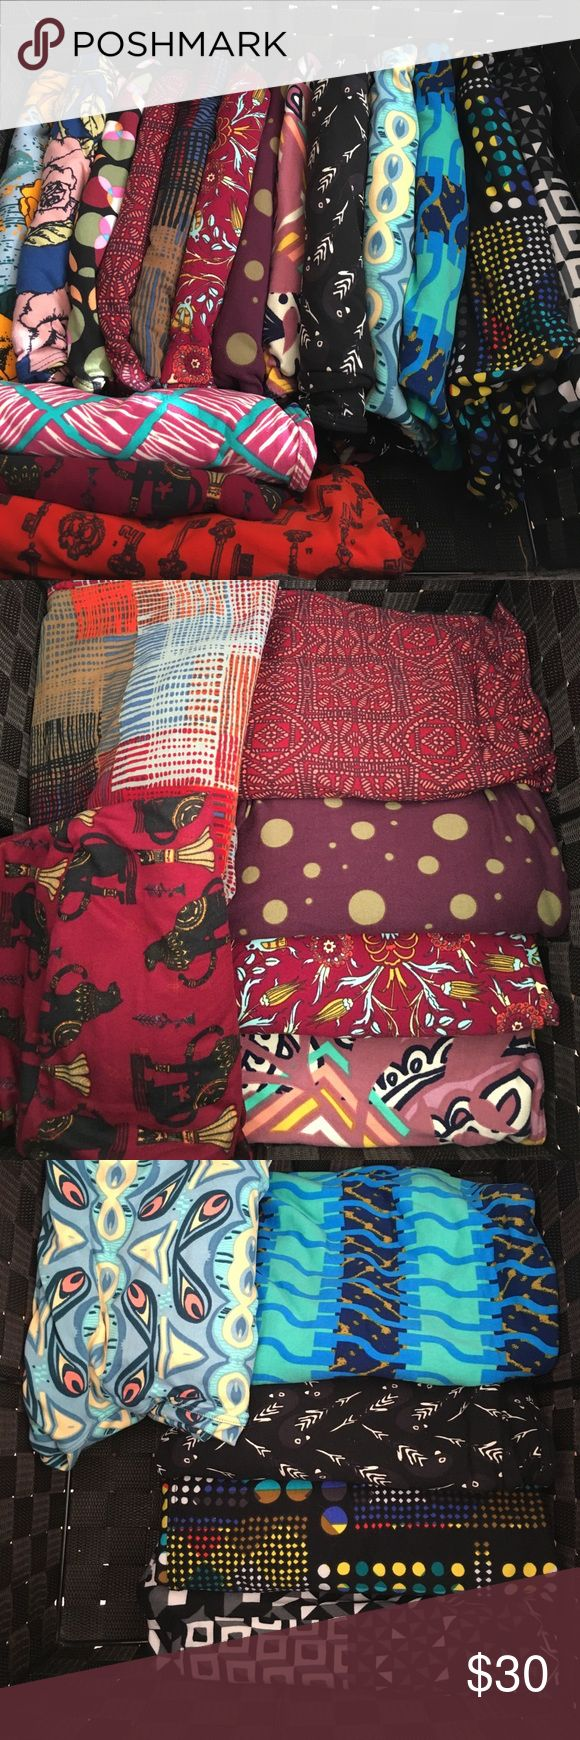 NWT LuLaRoe Leggings These are for sale individually, or pick a pair free with any bundle over $75.  Almost all are TC, a couple are OS, and all are brand new except the skeleton keys, which are very gently used, like new condition.  If you have questions about any of them or want more pics, just let me know! LuLaRoe Pants Leggings